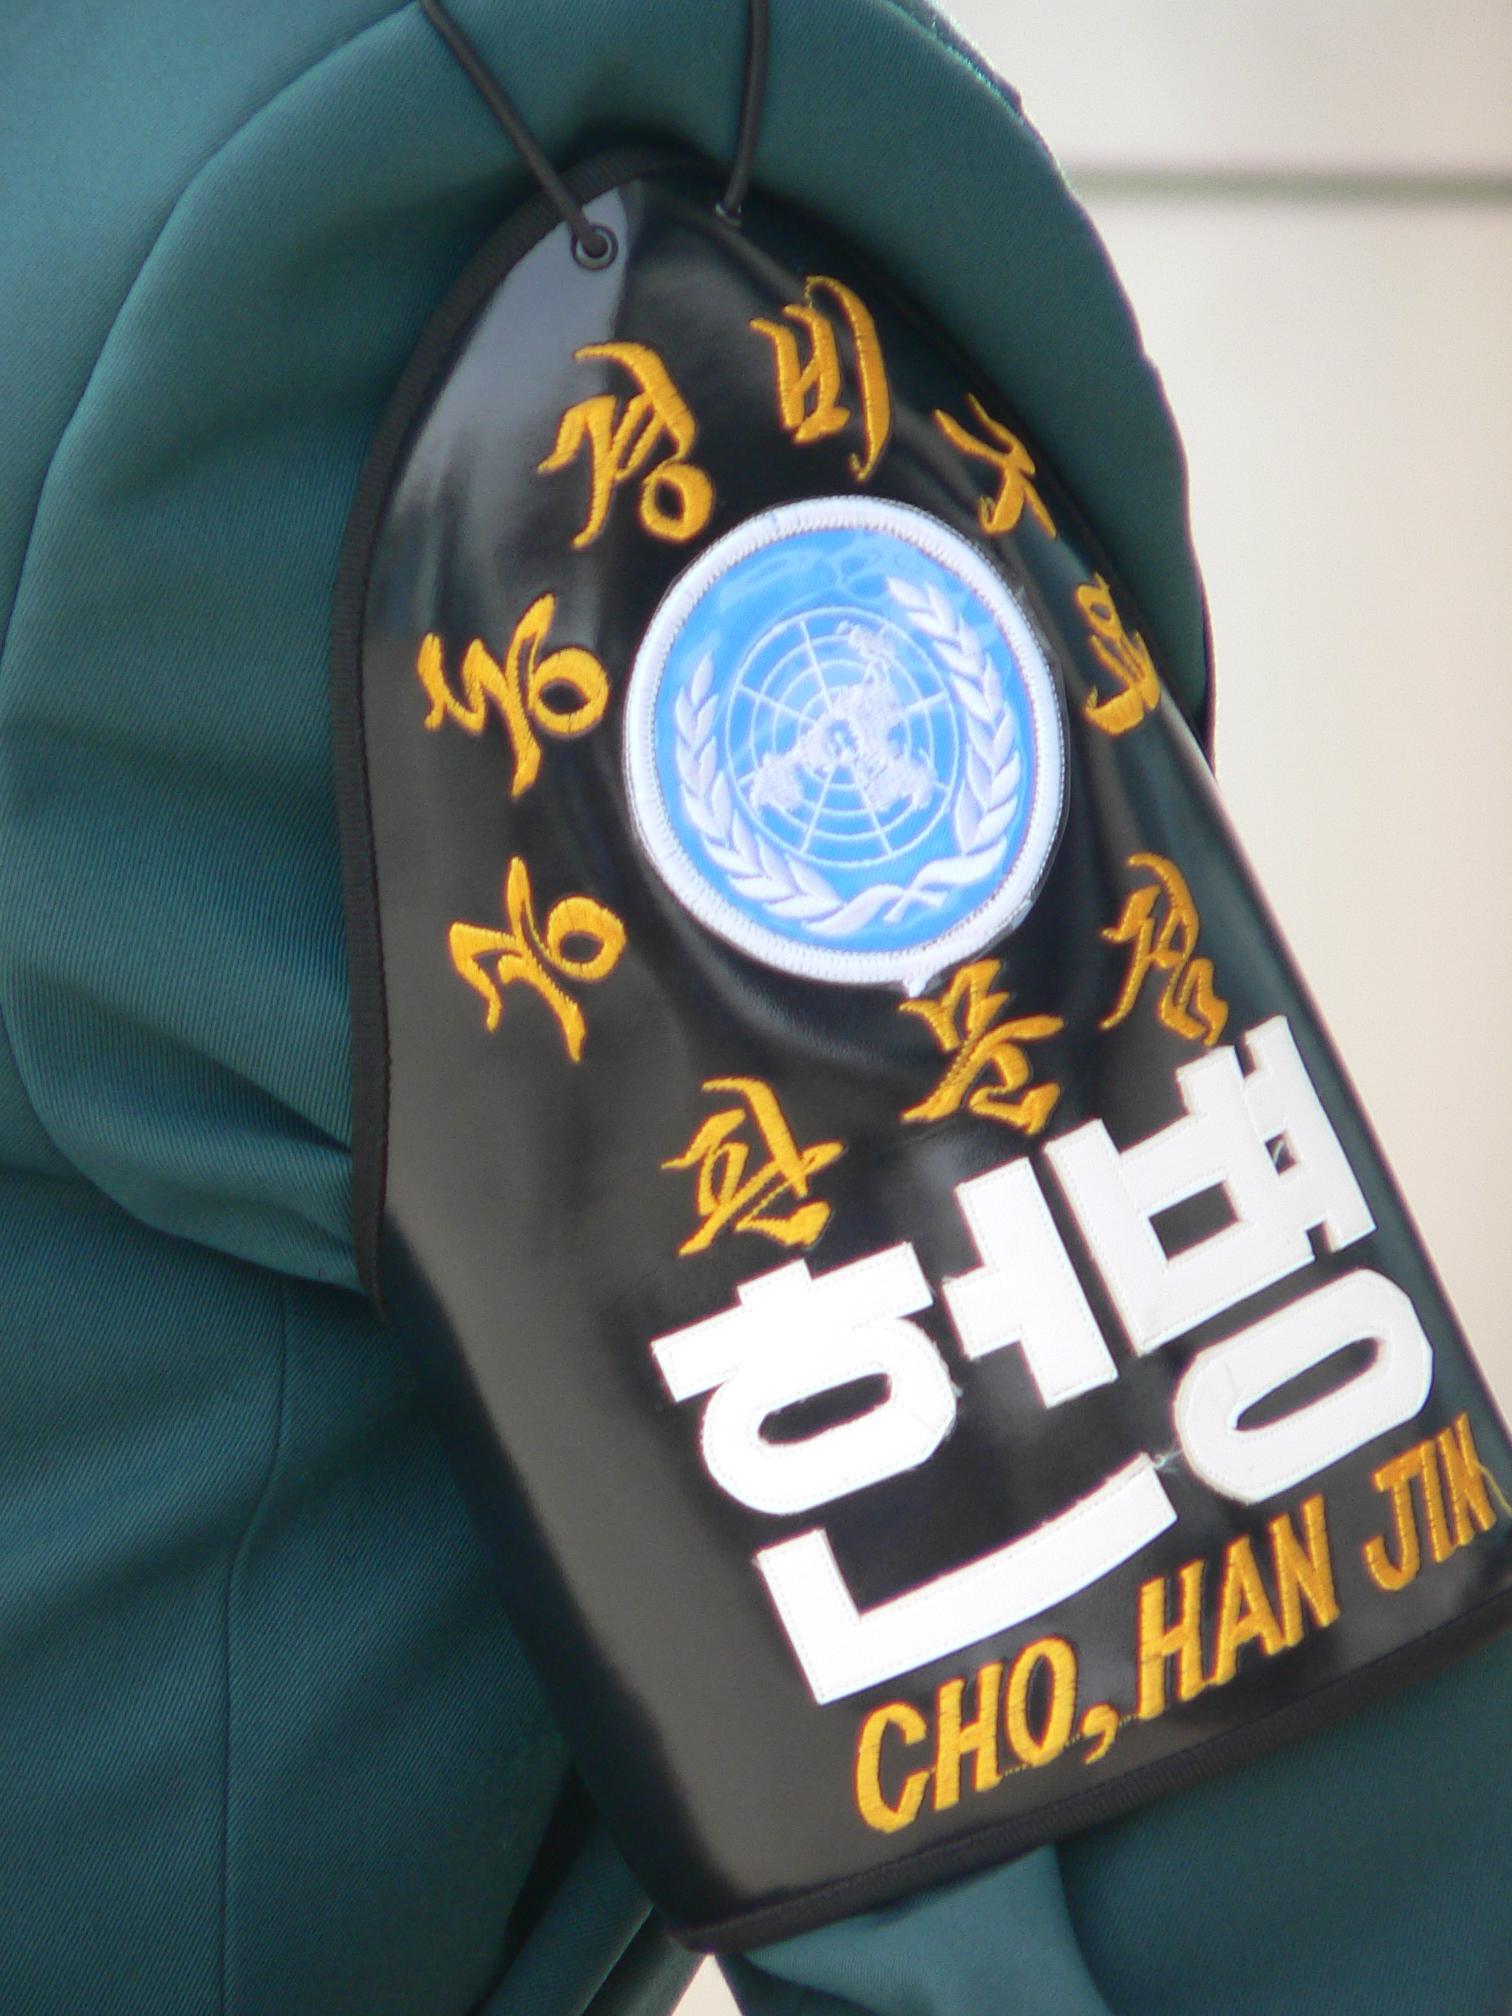 http://commons.wikipedia.org/wiki/File:Korean_DMZ_Soldier_Arm_Band.jpg